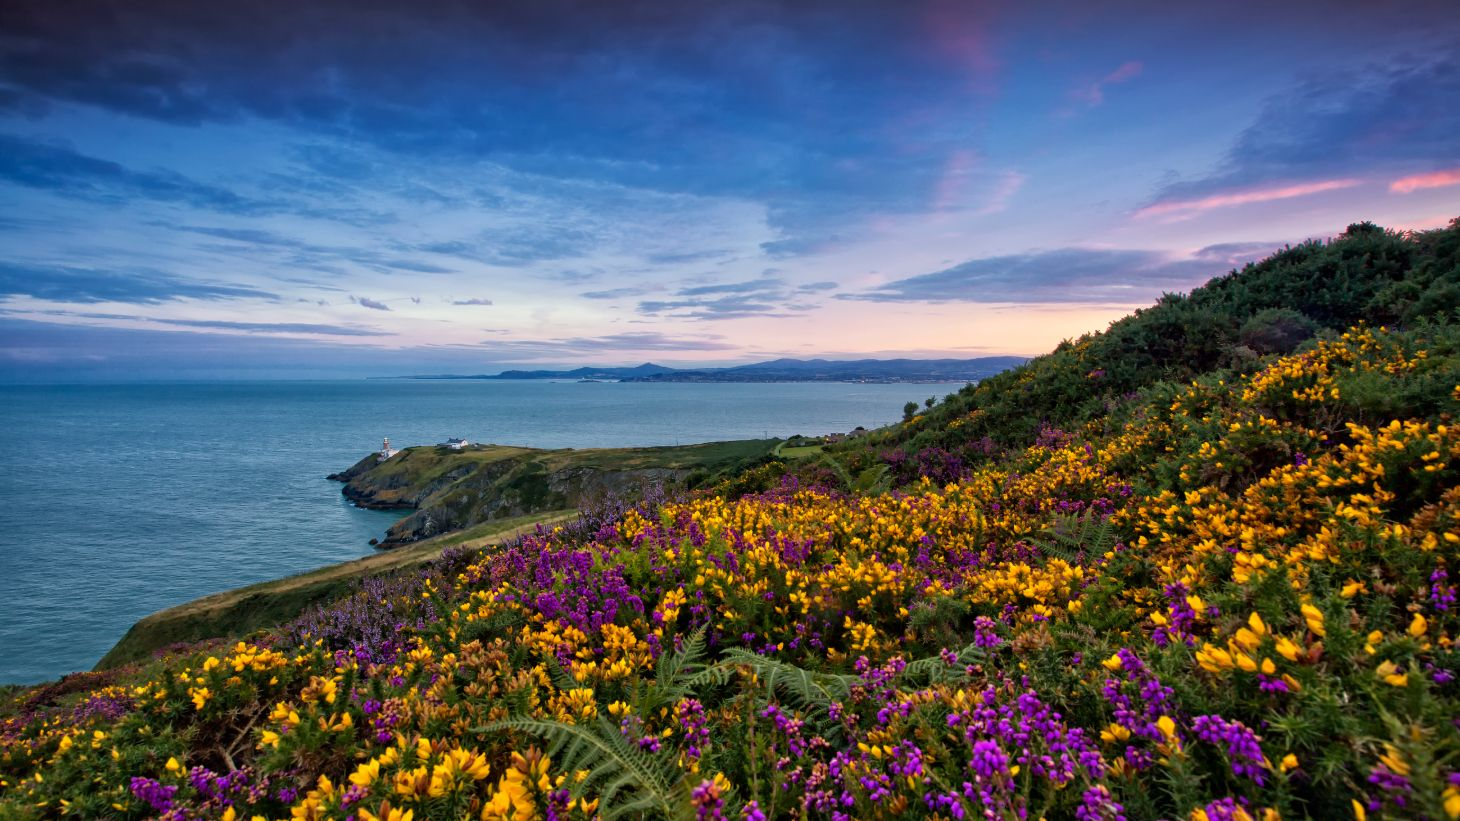 See the stunning scenery from Howth Head.